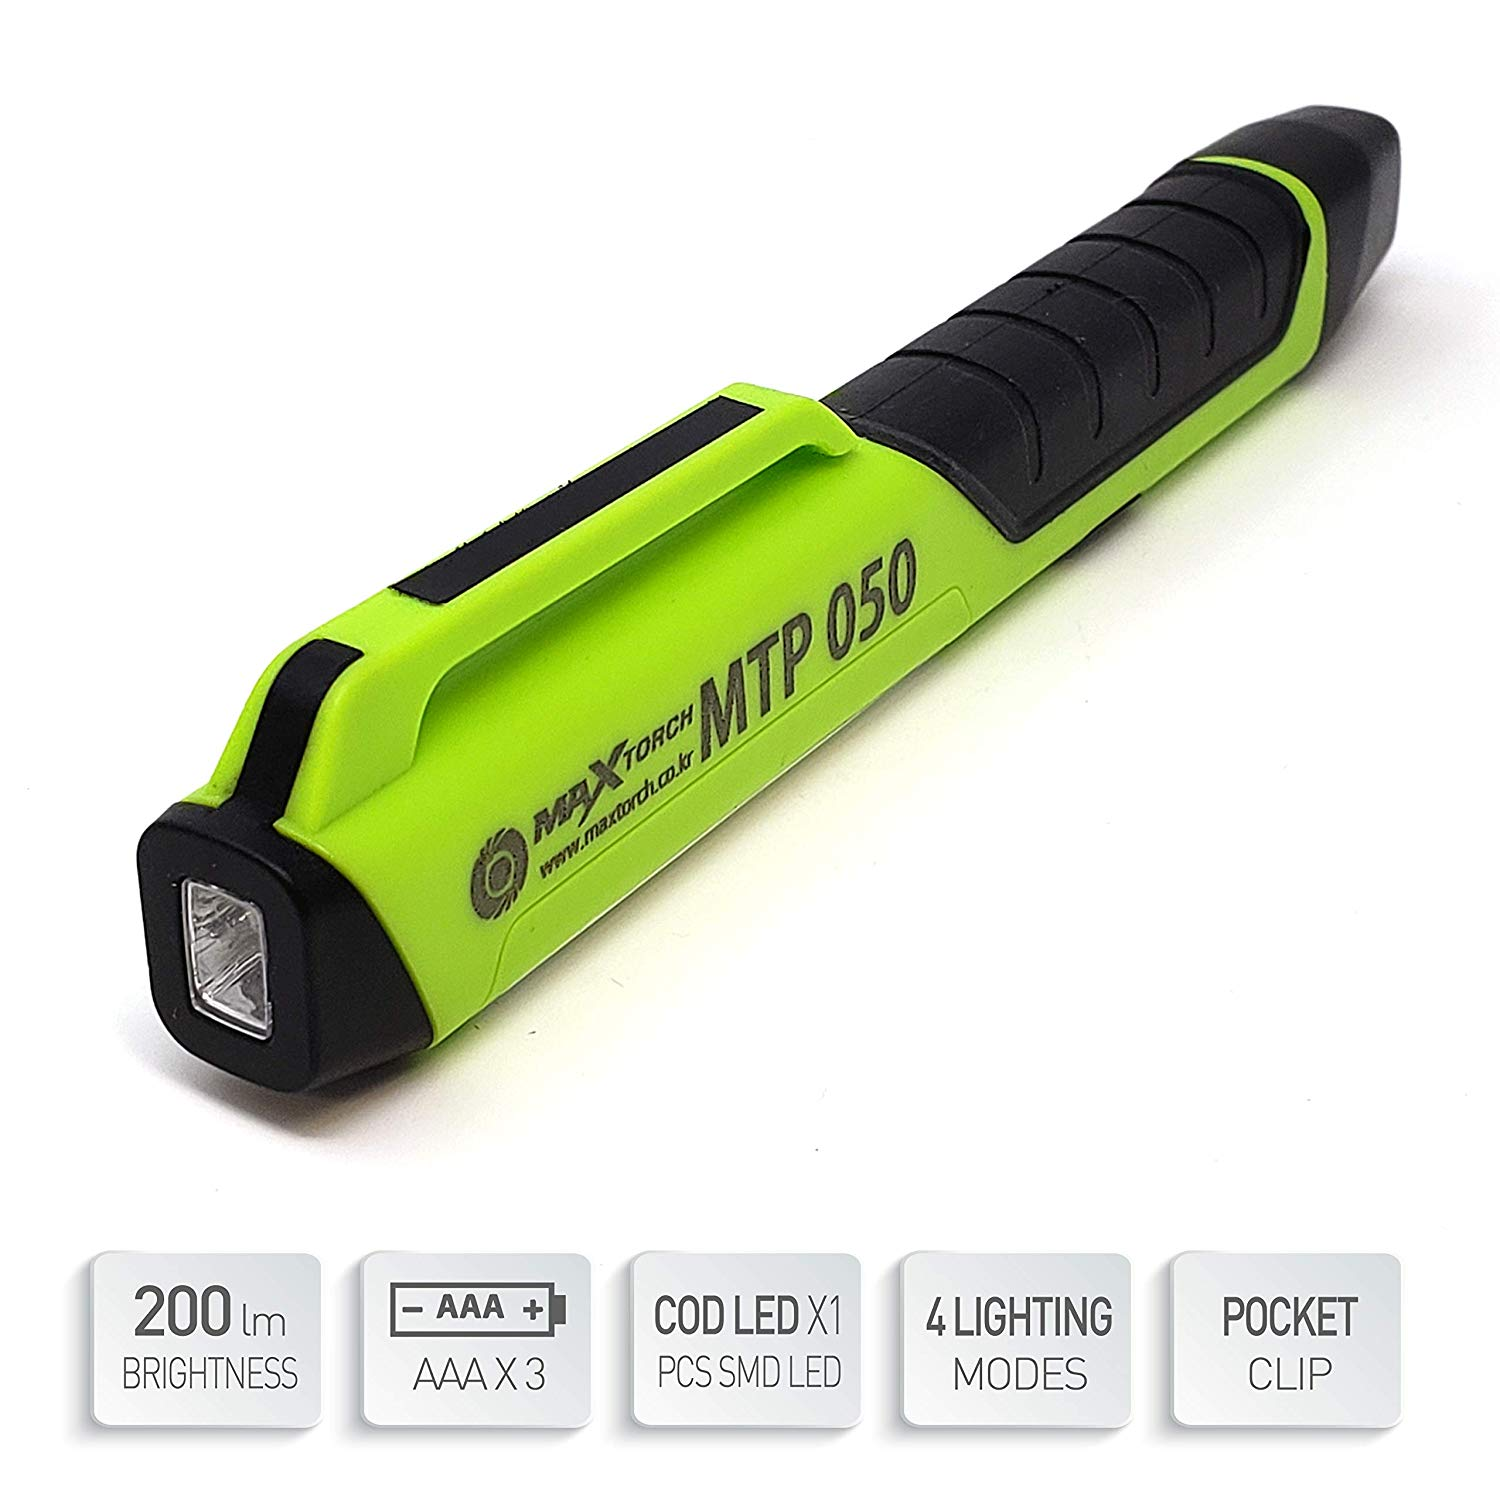 JBM CO. LTD Reinvents Tactical Lighting with the Release of Its Pocket Clip Multifunctional LED Flashlight